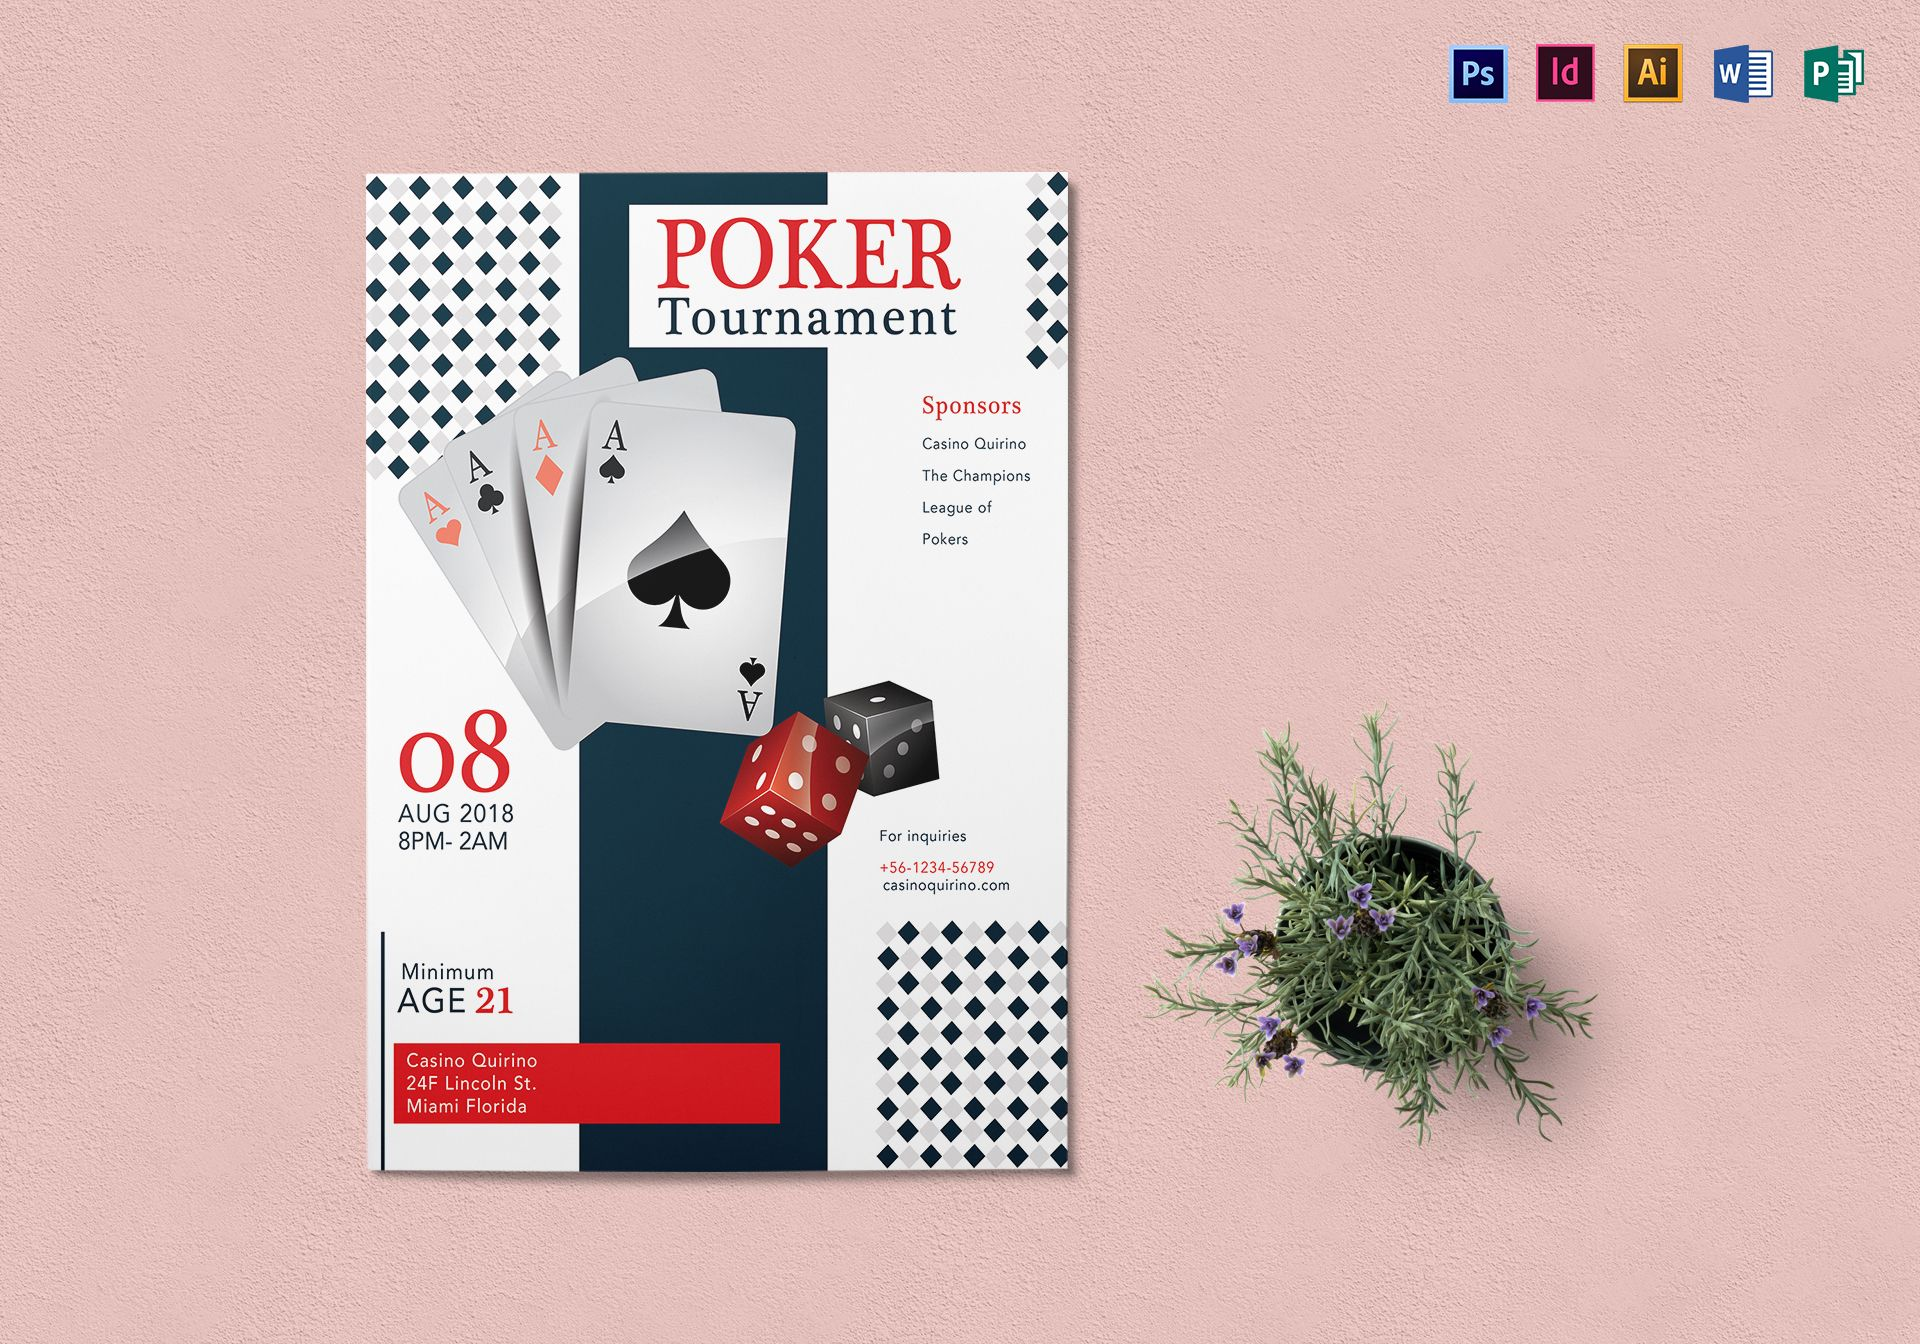 Poker Tournament Flyer Design Template In PSD Word Publisher - Poker tournament flyer template word